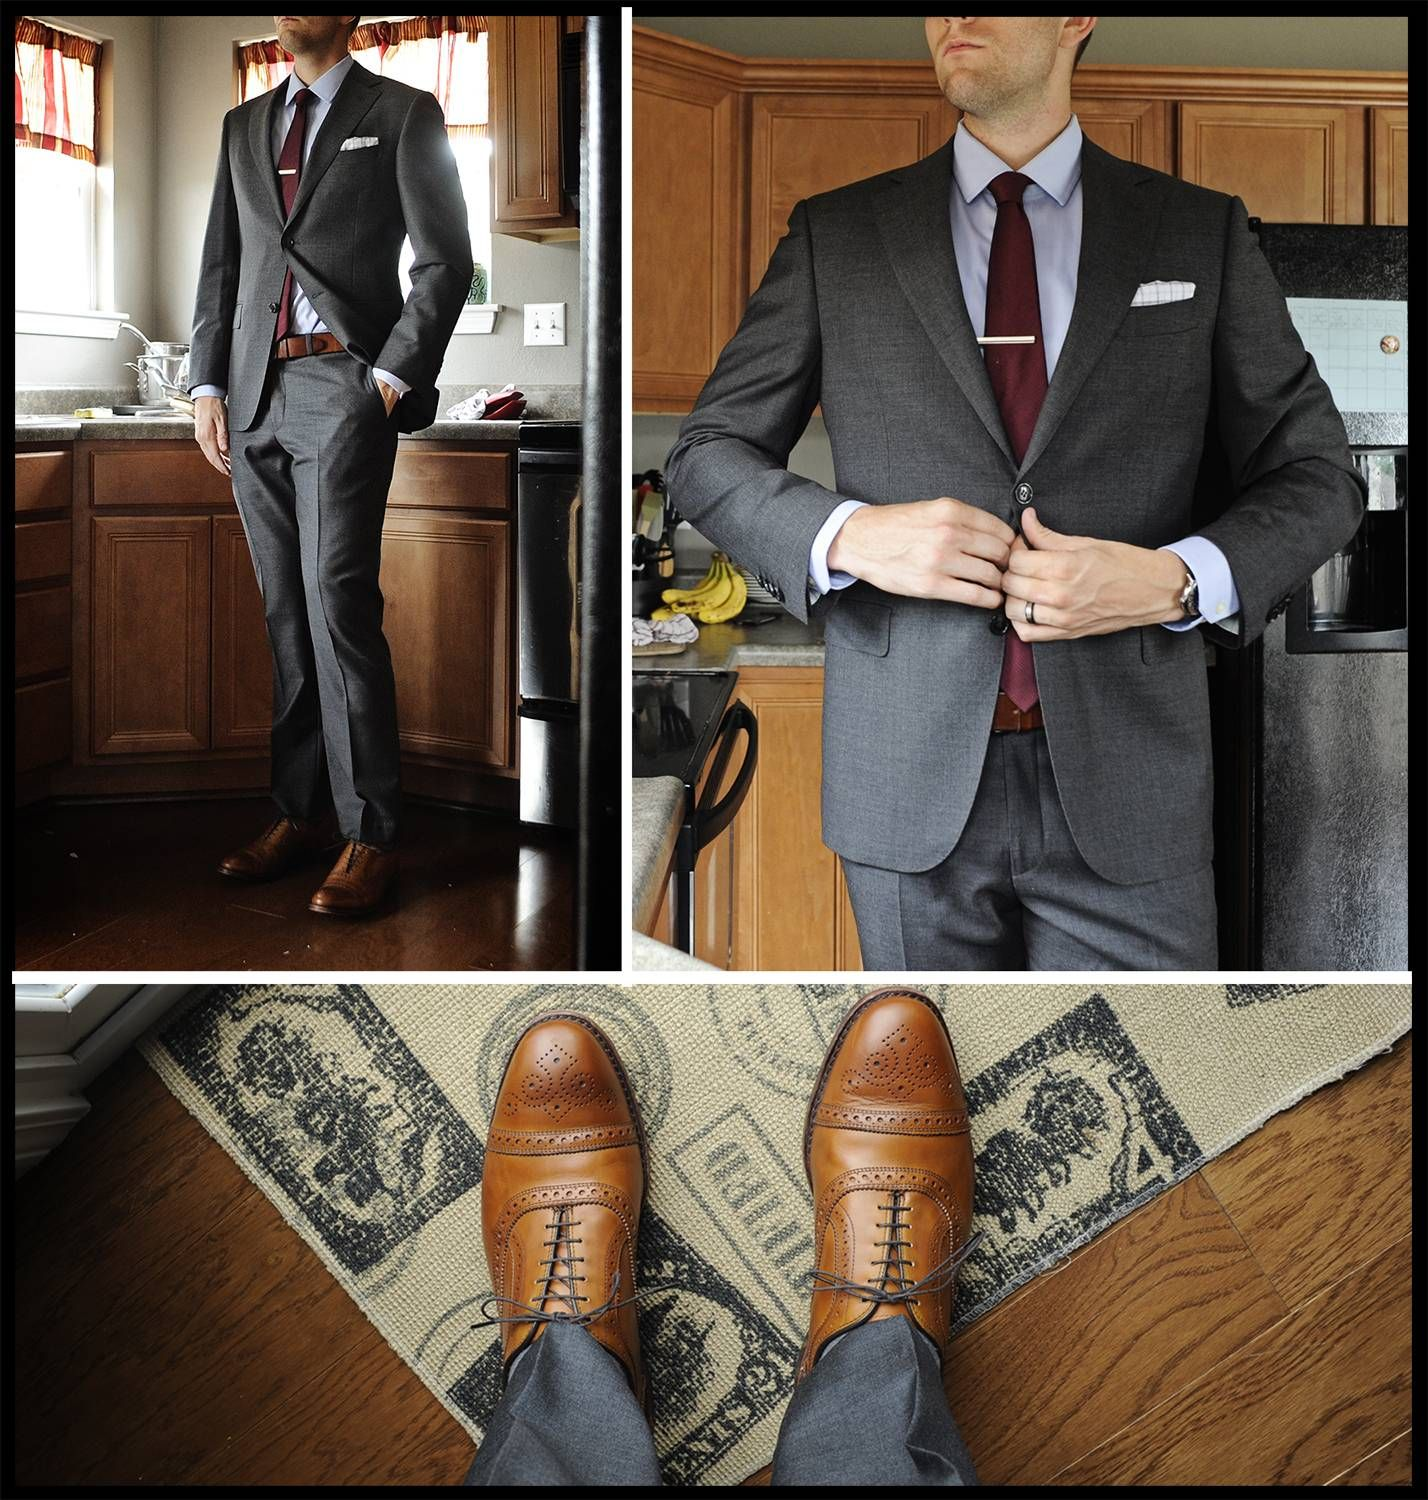 Gray suit, tan shoes, and a burgundy tie. Balance your dark with color.